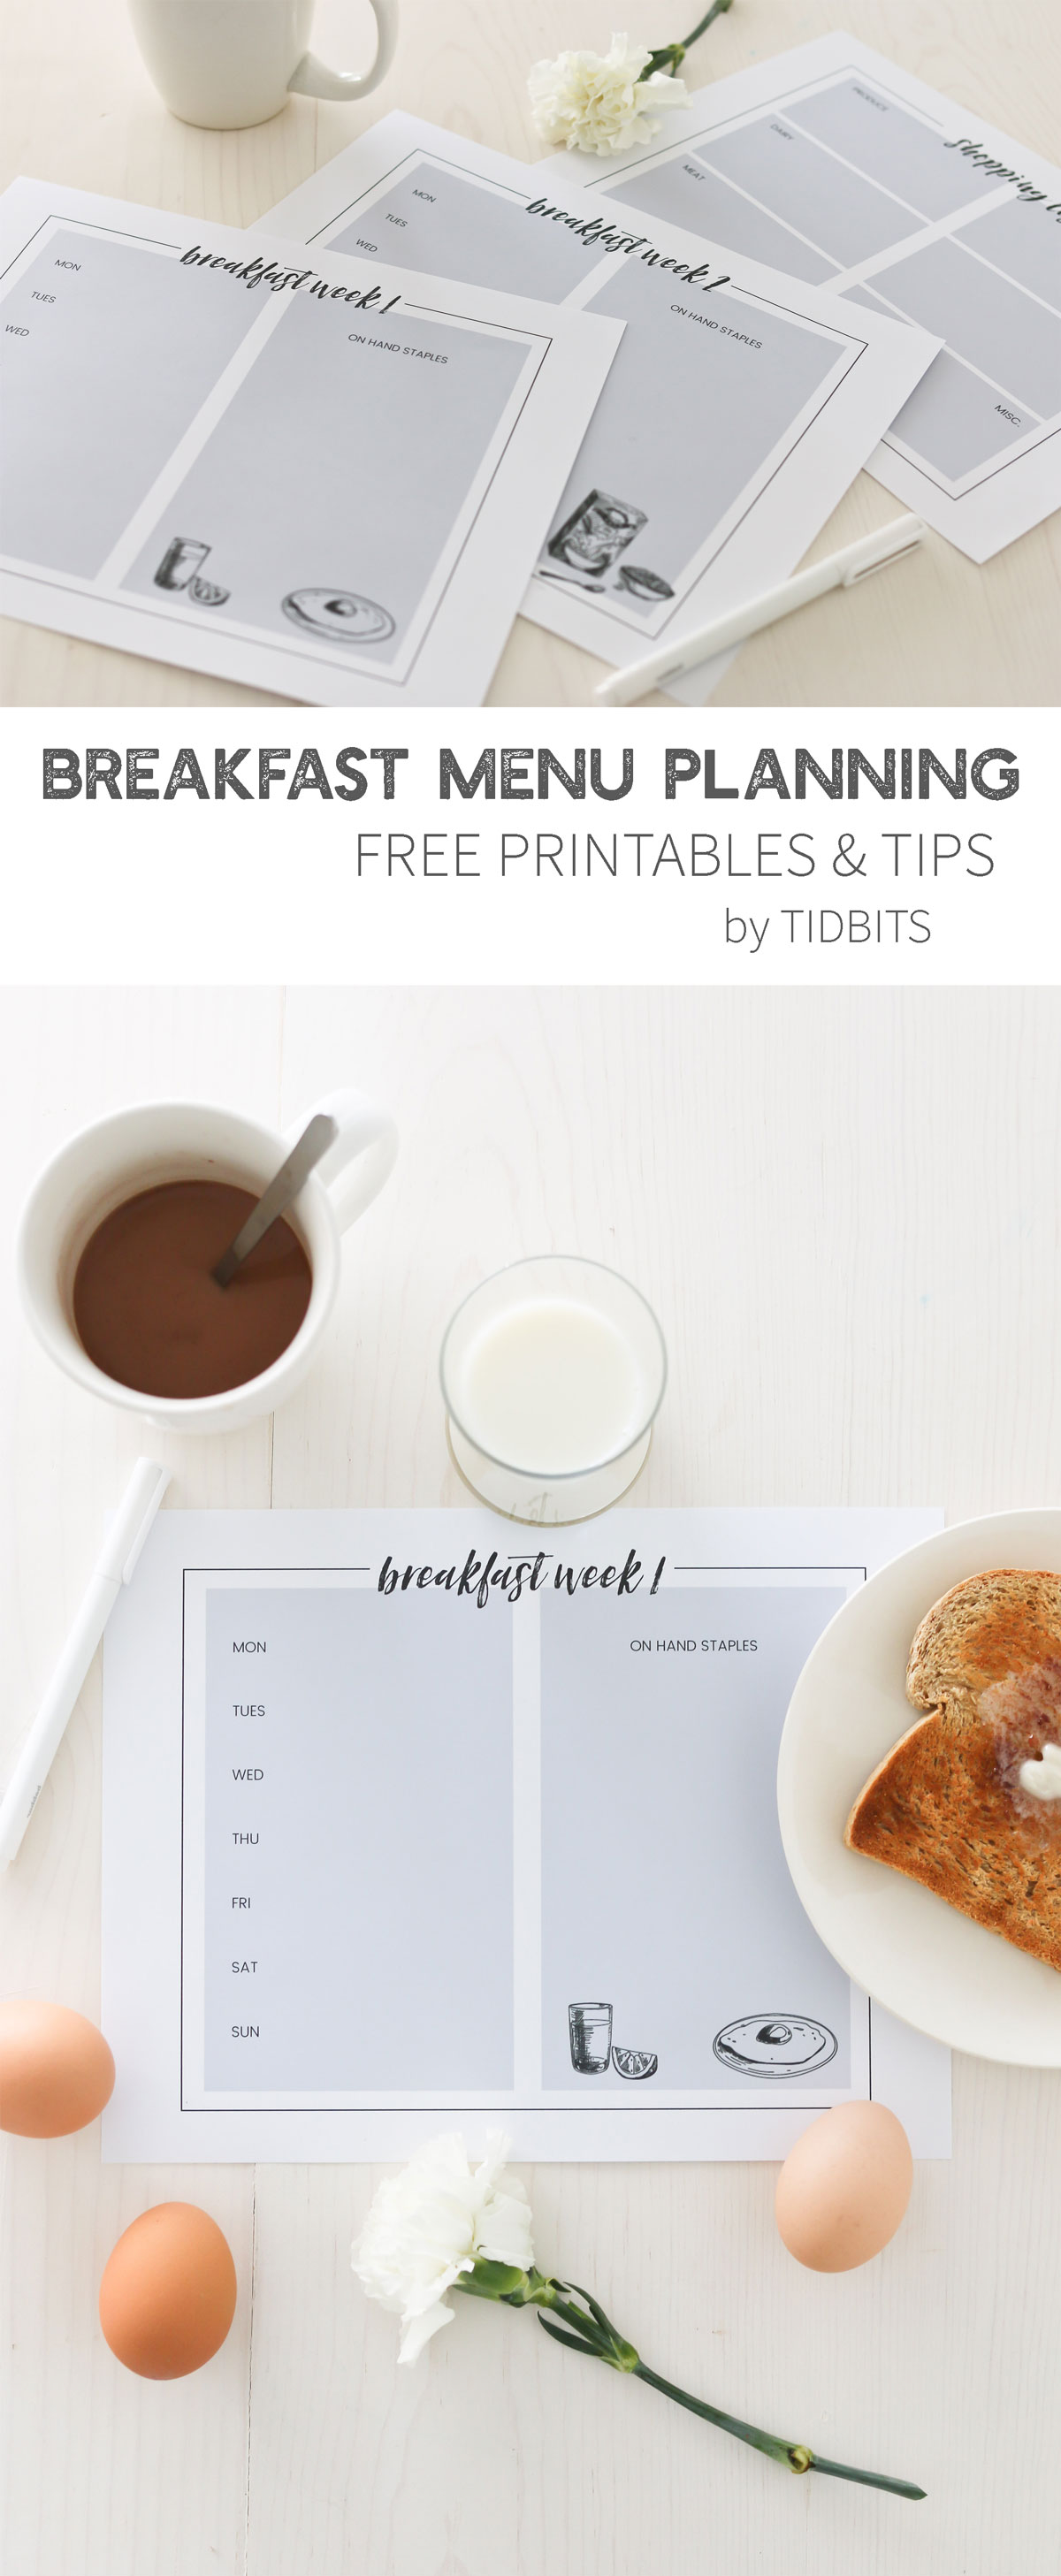 Breakfast Menu Planning Printables and Tips. Start the day off right!